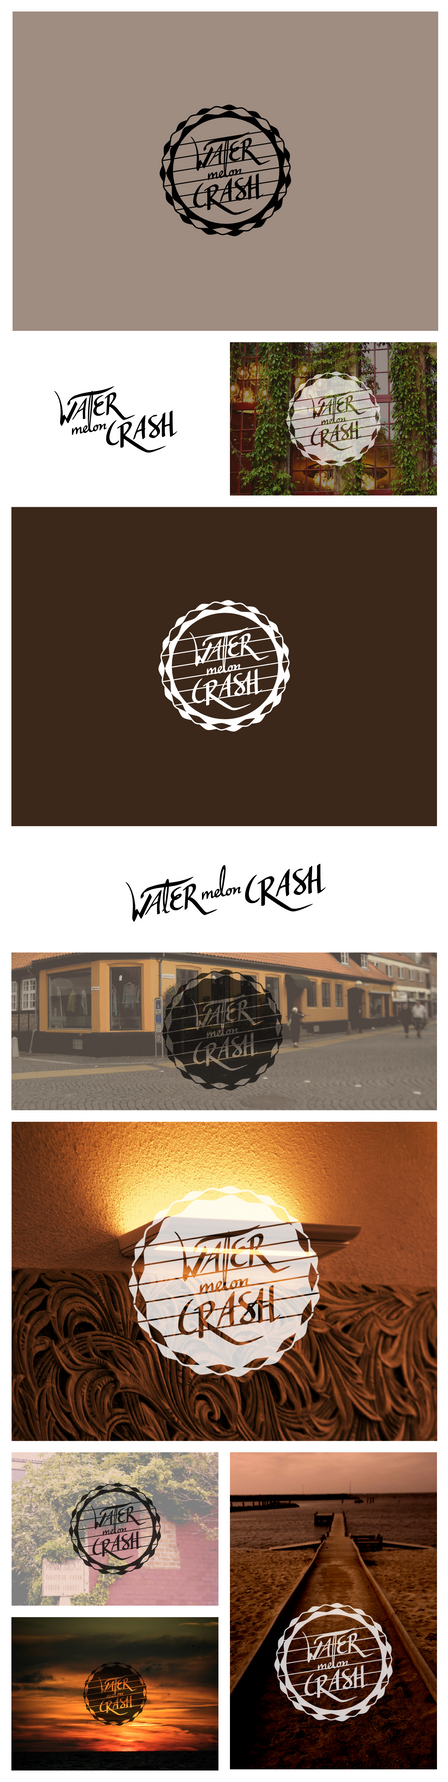 WATERmelon CRASH logo by Zalin